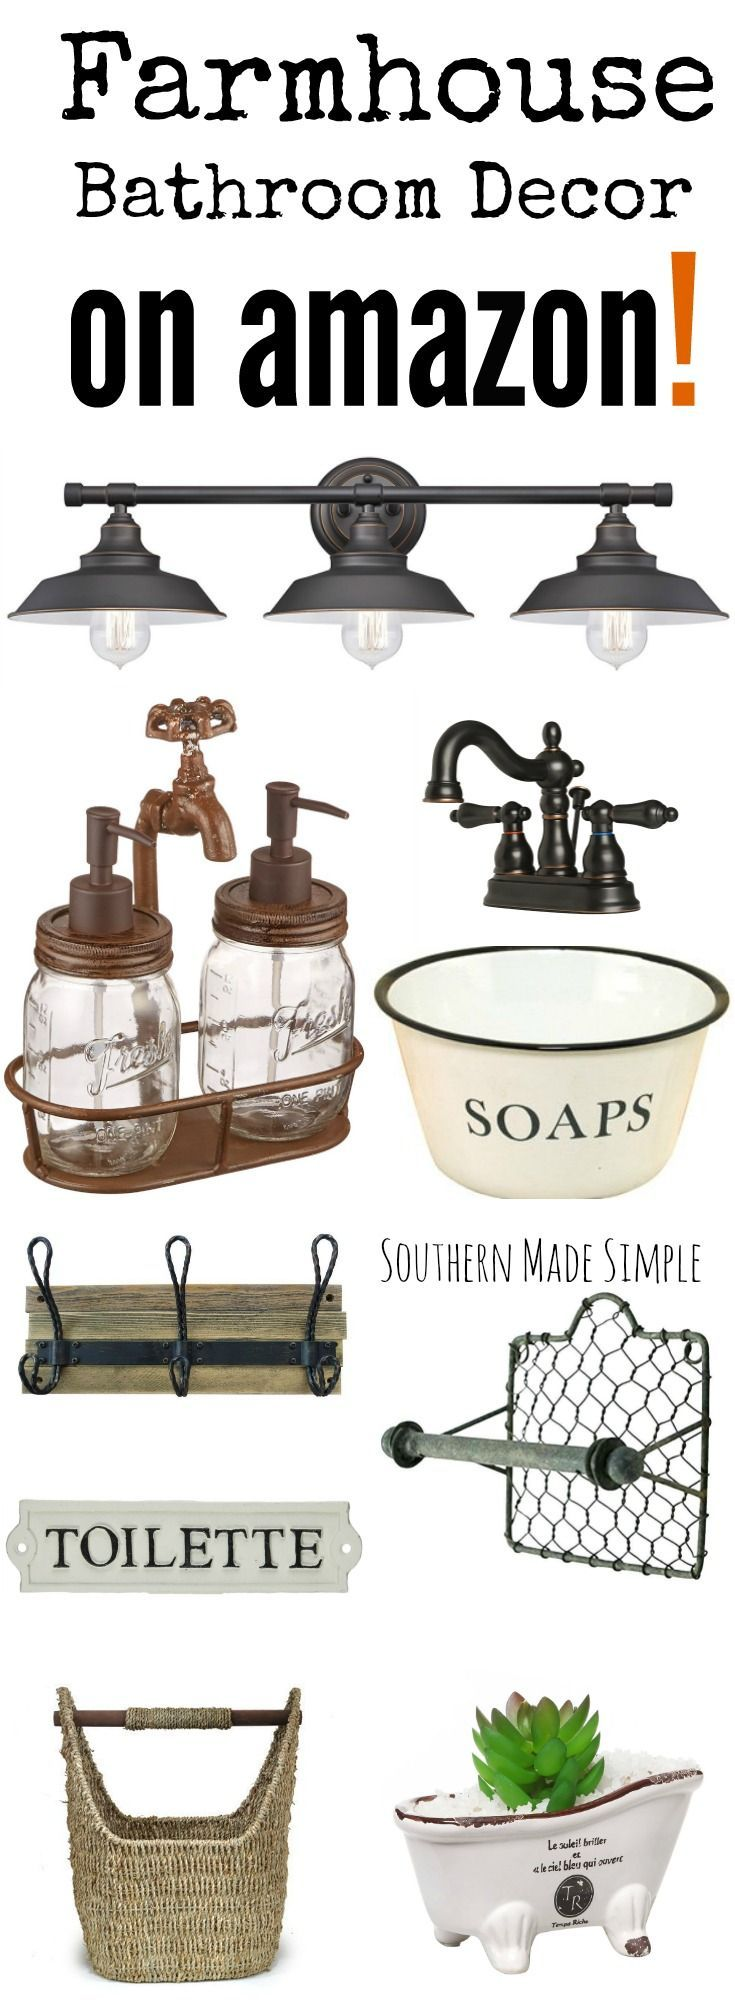 Bathroom Lights Went Out farmhouse style bathroom light fixtures | farmhouse style